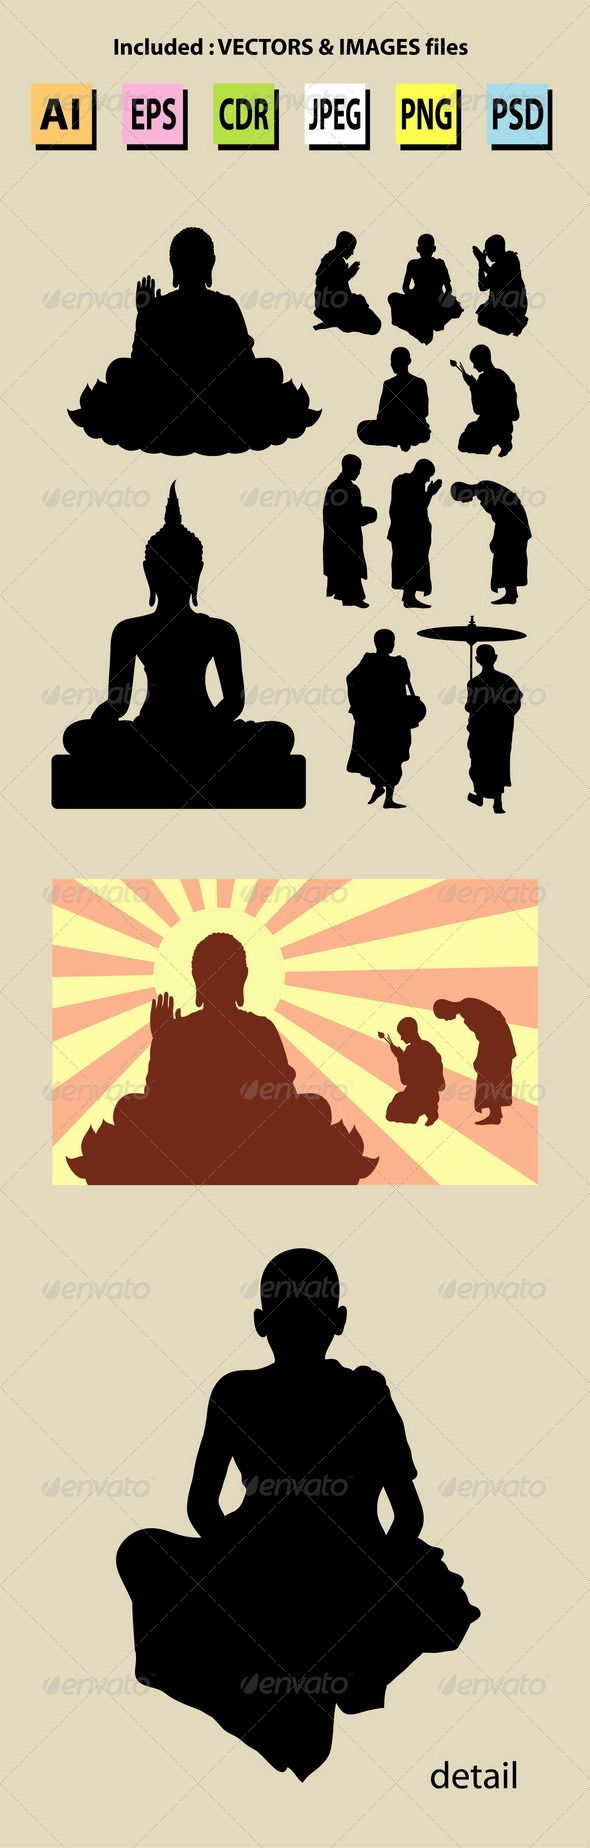 Nice, clean and smooth vector. Monk and Buddha Silhouettes. Easy to use, edit or change color. Good use for sticker, wallpaper, background, or any design you want.